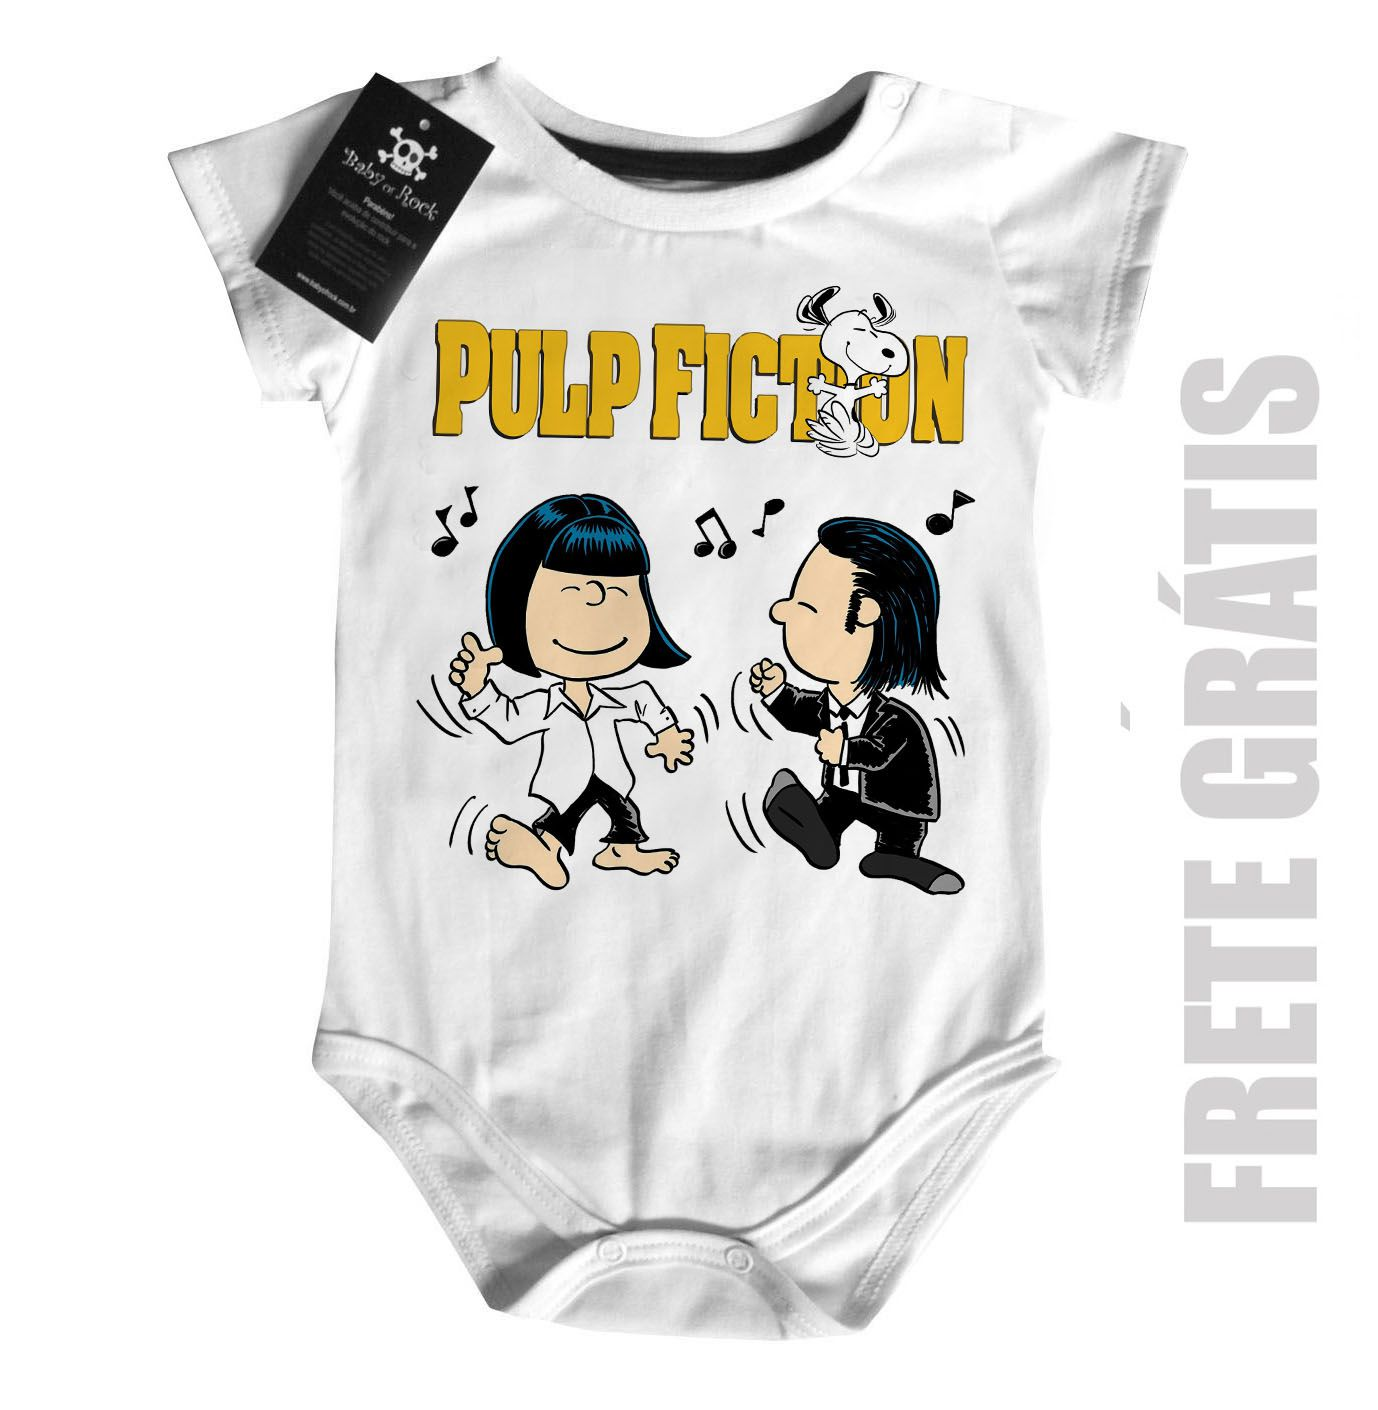 Body Bebê filmes Pulp Fiction - Snoopy  (Tarantino) - White  - Baby Monster S/A